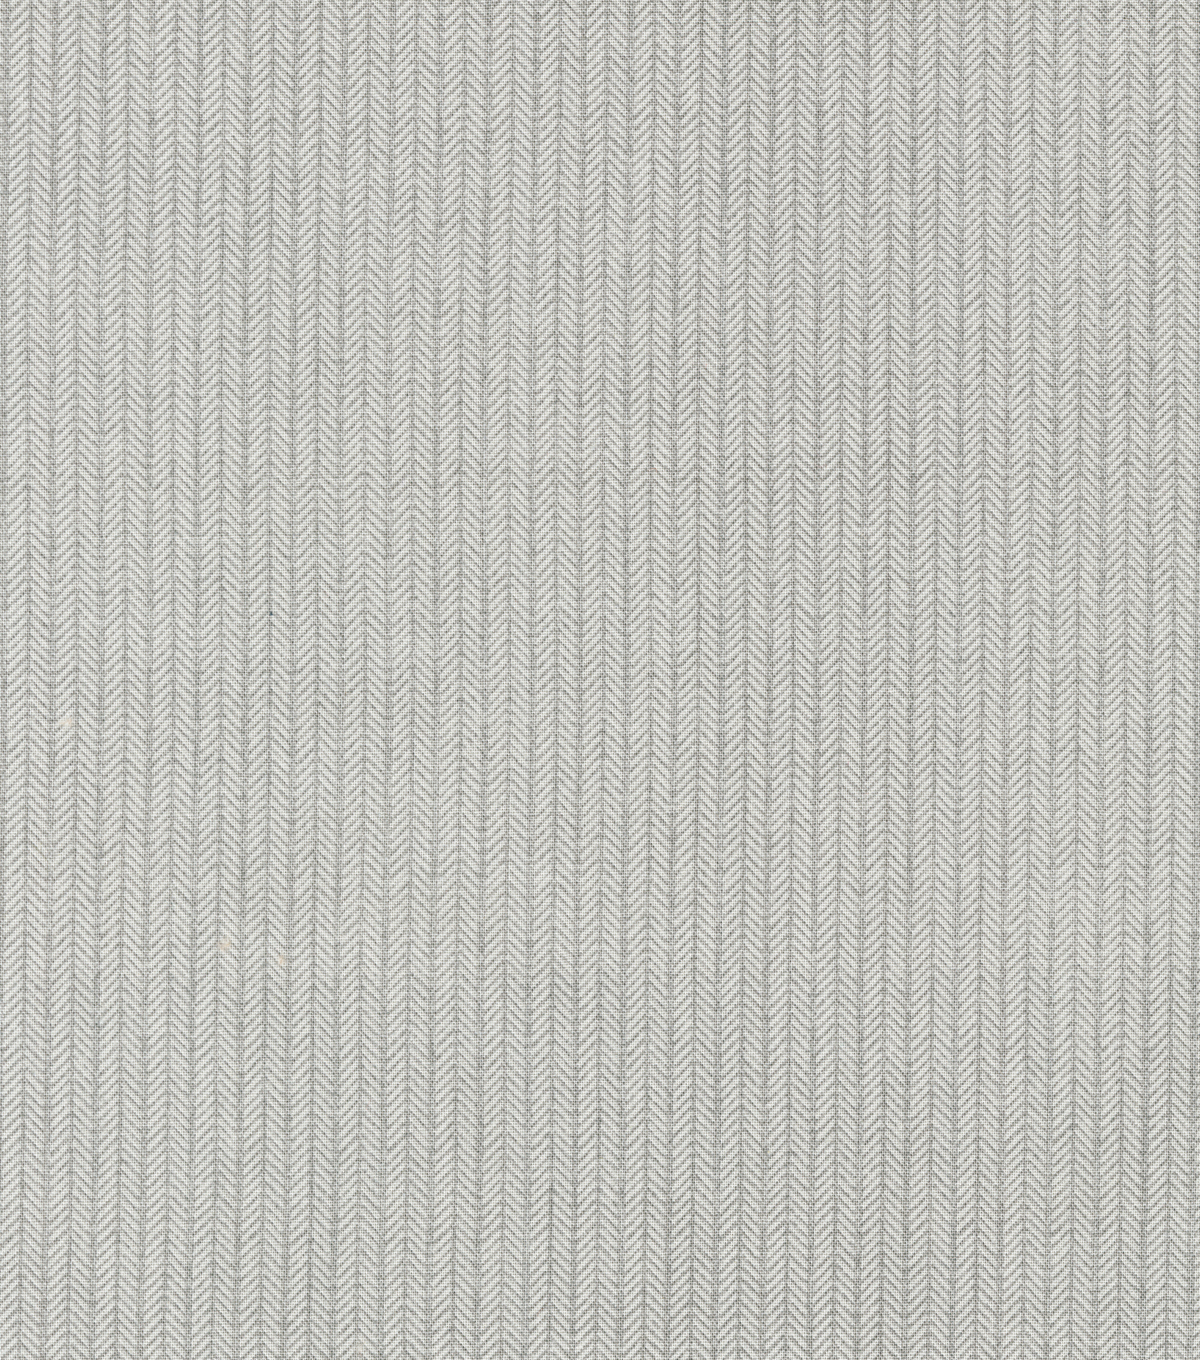 Keepsake Calico Cotton Fabric-Print Chevron Grey